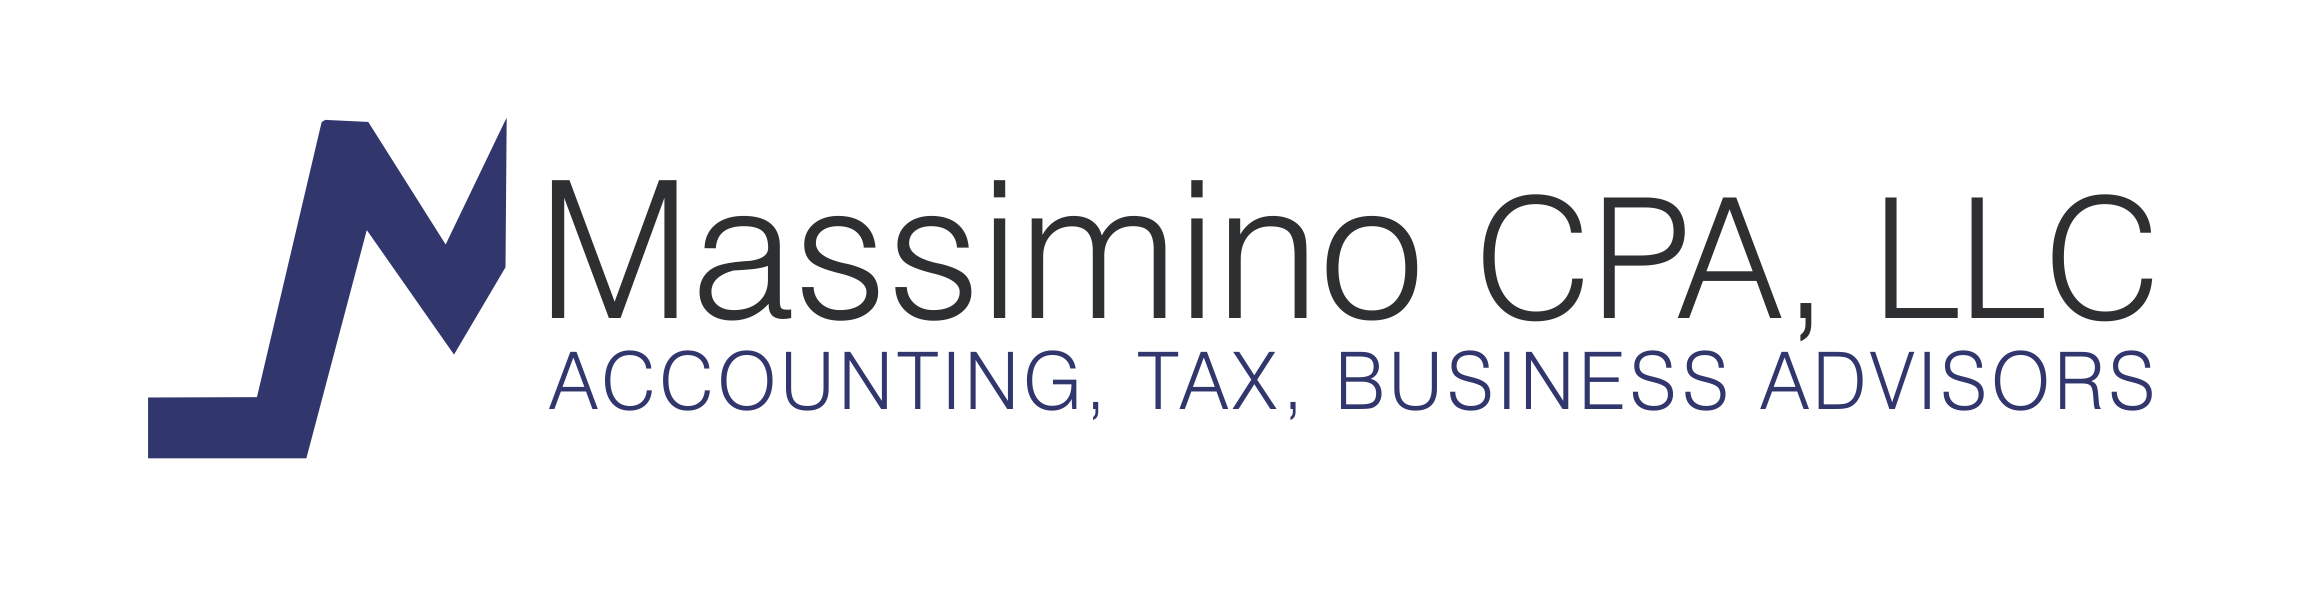 Lowell, MA CPA Firm | Privacy Policy Page | Massimino CPA, LLC